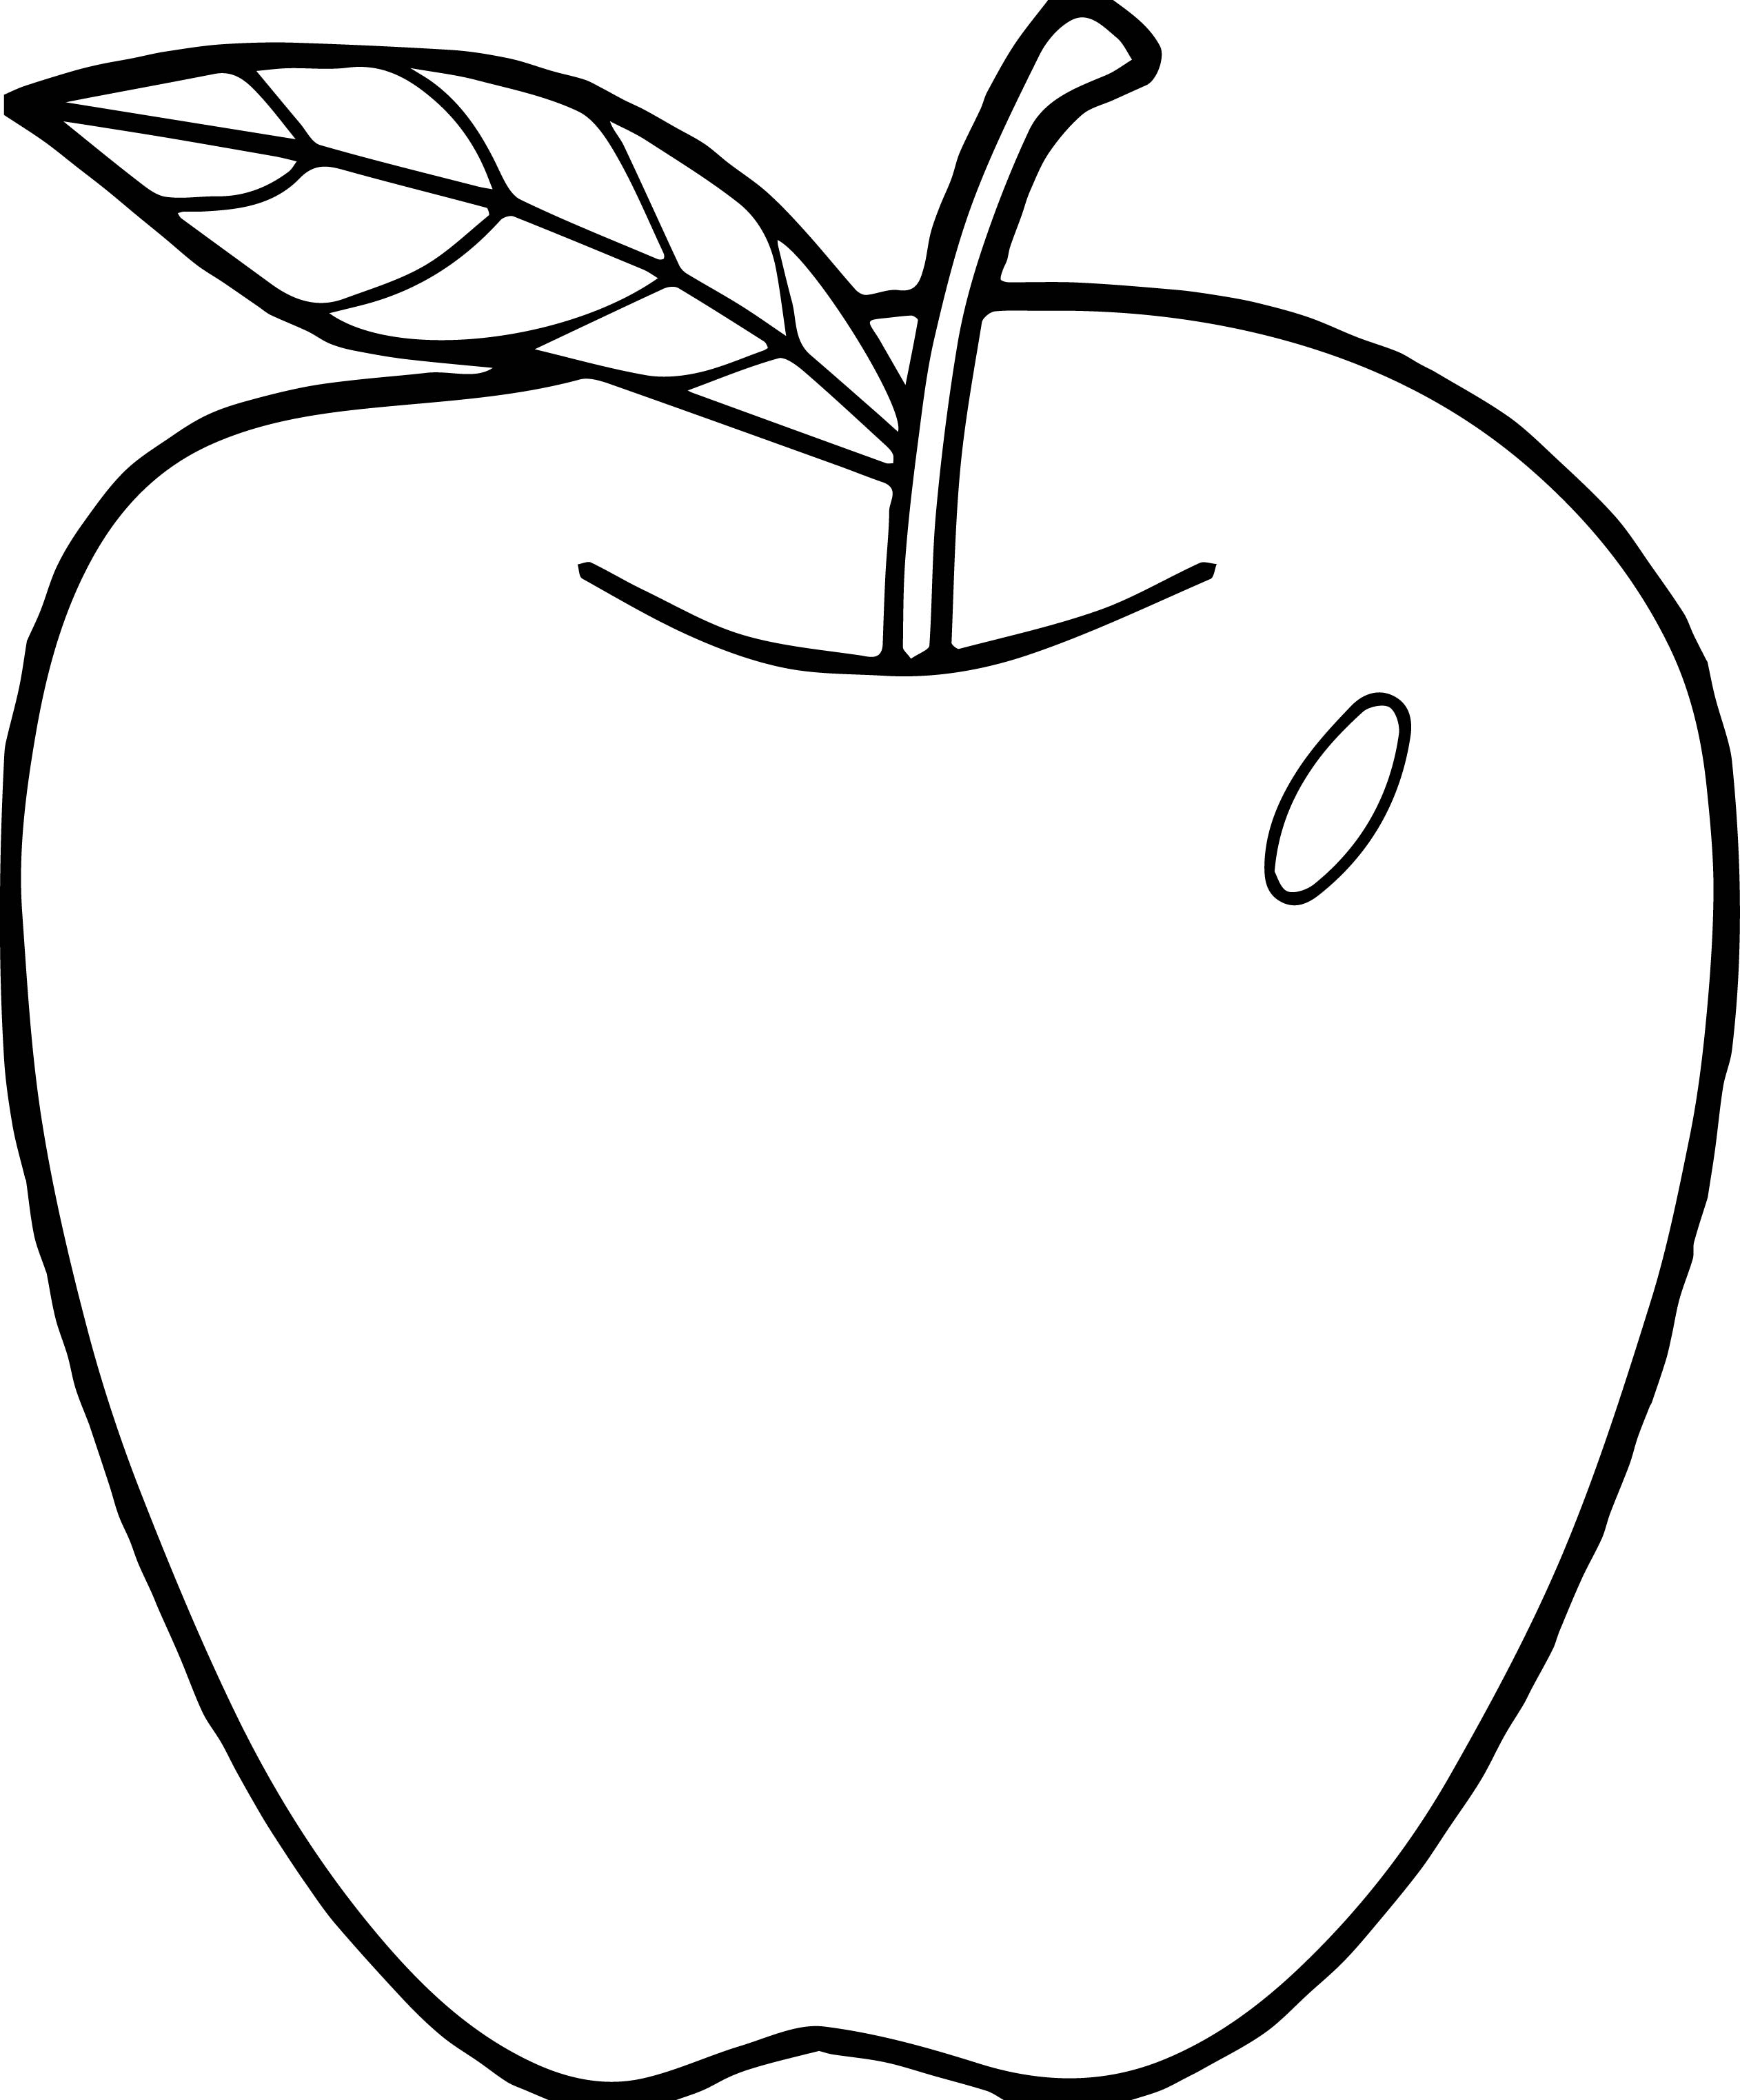 Parts Of An Apple Coloring Pages Nomenclature Cards